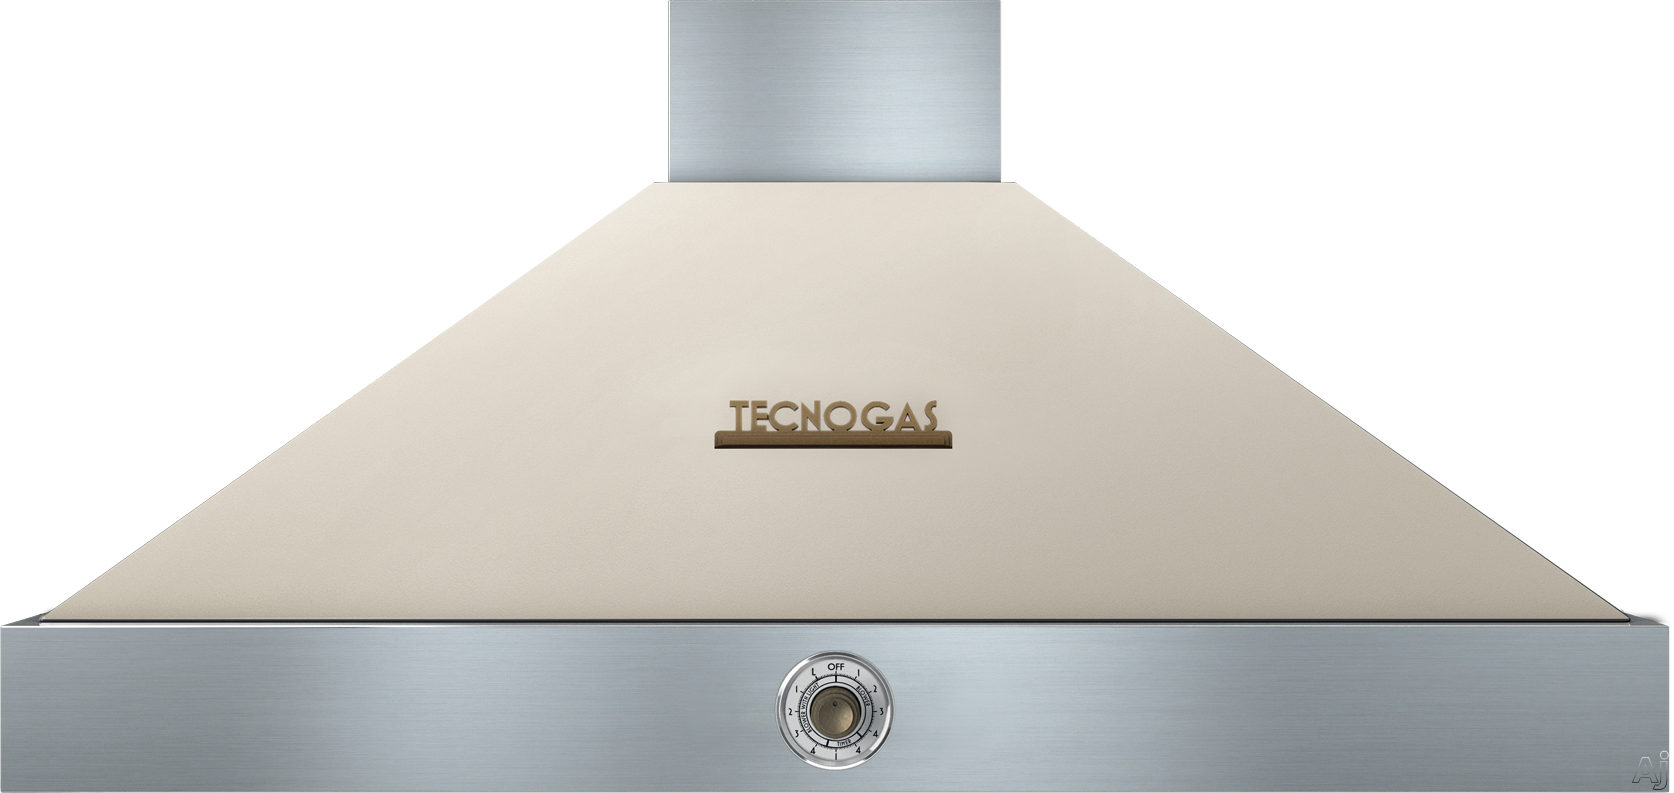 Tecnogas Superiore Deco Series HD361ACCB 36 Inch Wall Mount Canopy Hood with 600 CFM Blower, 4 Speed Settings, 3 Dishwasher Safe Baffle Filters, 2 Halogen Lights, 58 dBA Noise Level and Automatic Shut-Off: Cream with Bronze Accents HD361ACCB